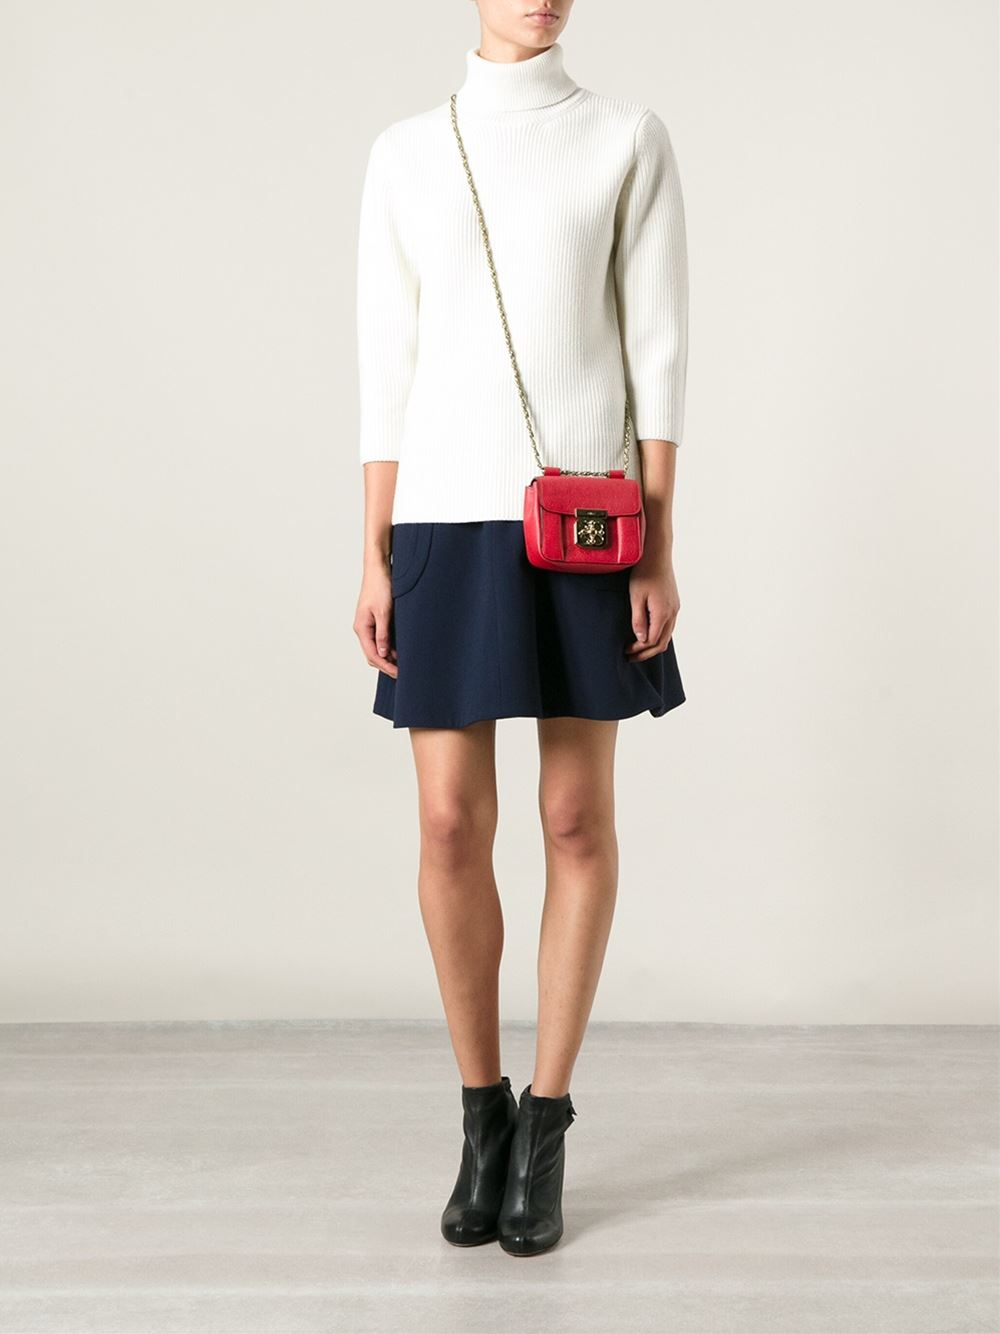 Chlo¨¦ \u0026#39;Elsie\u0026#39; Crossbody Bag in Red | Lyst